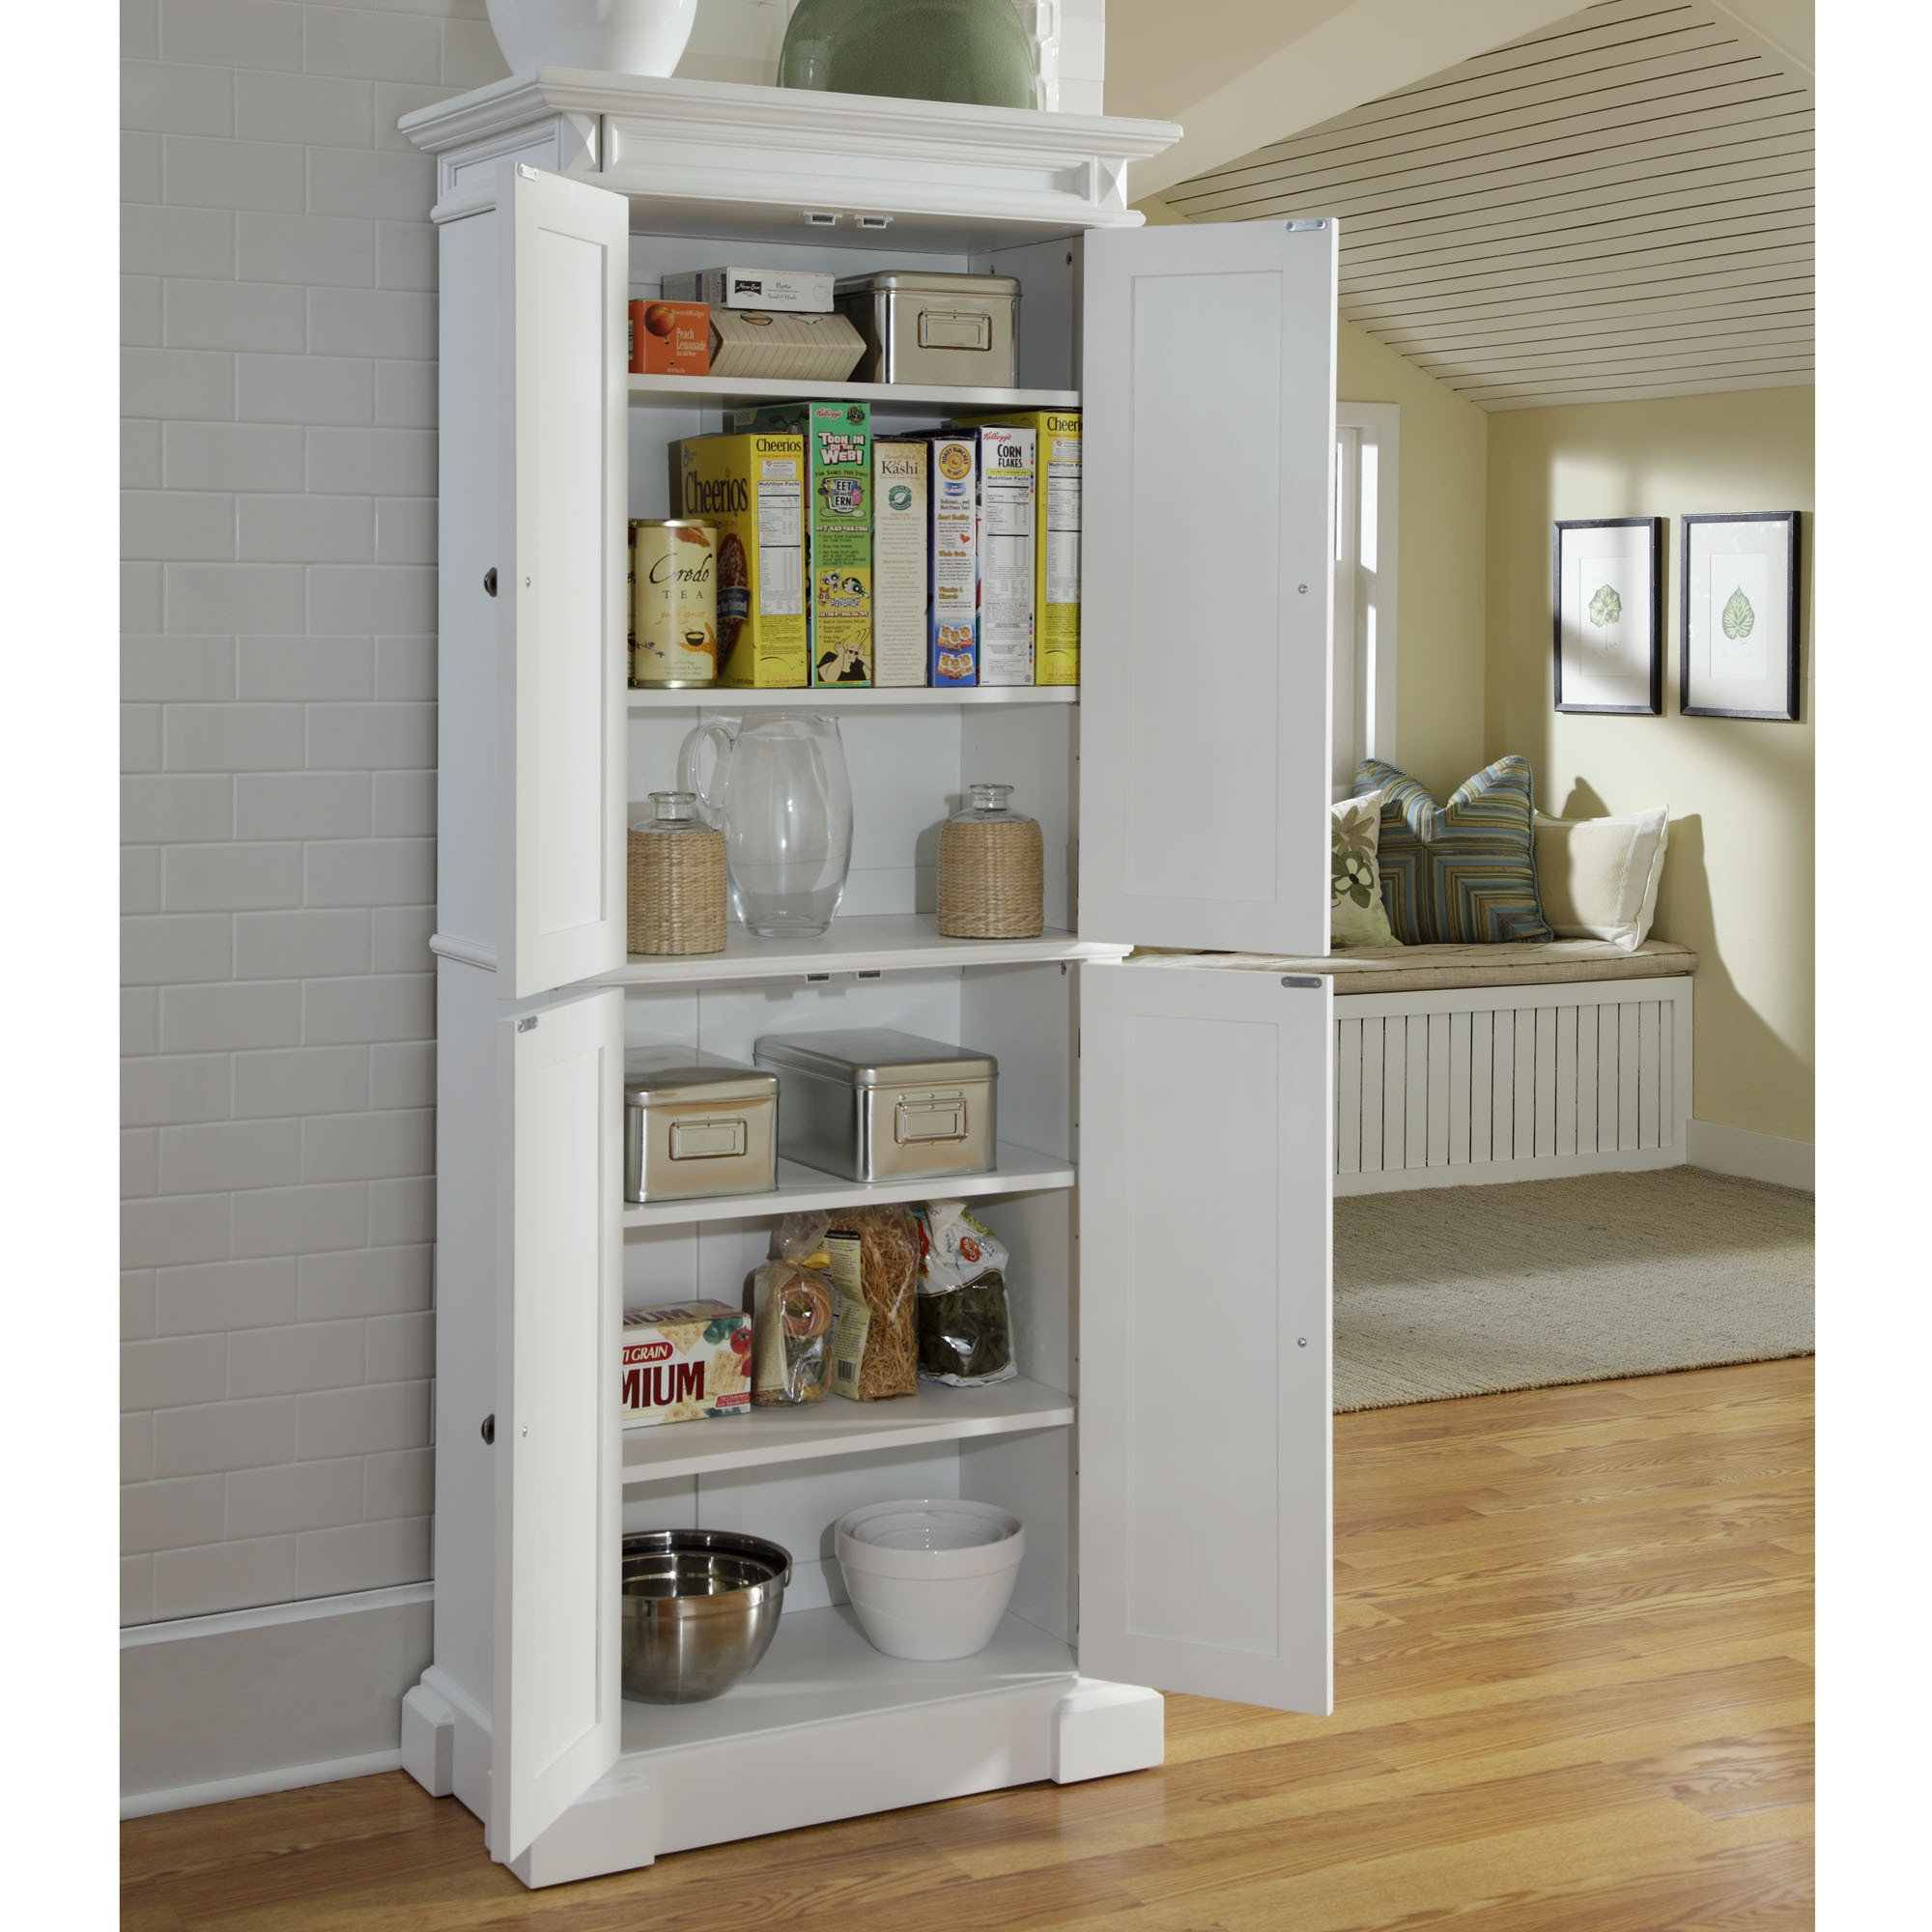 Kitchen Storage Cabinets With Doors And Shelveswhite storage cabinets with doors and shelves creative cabinets